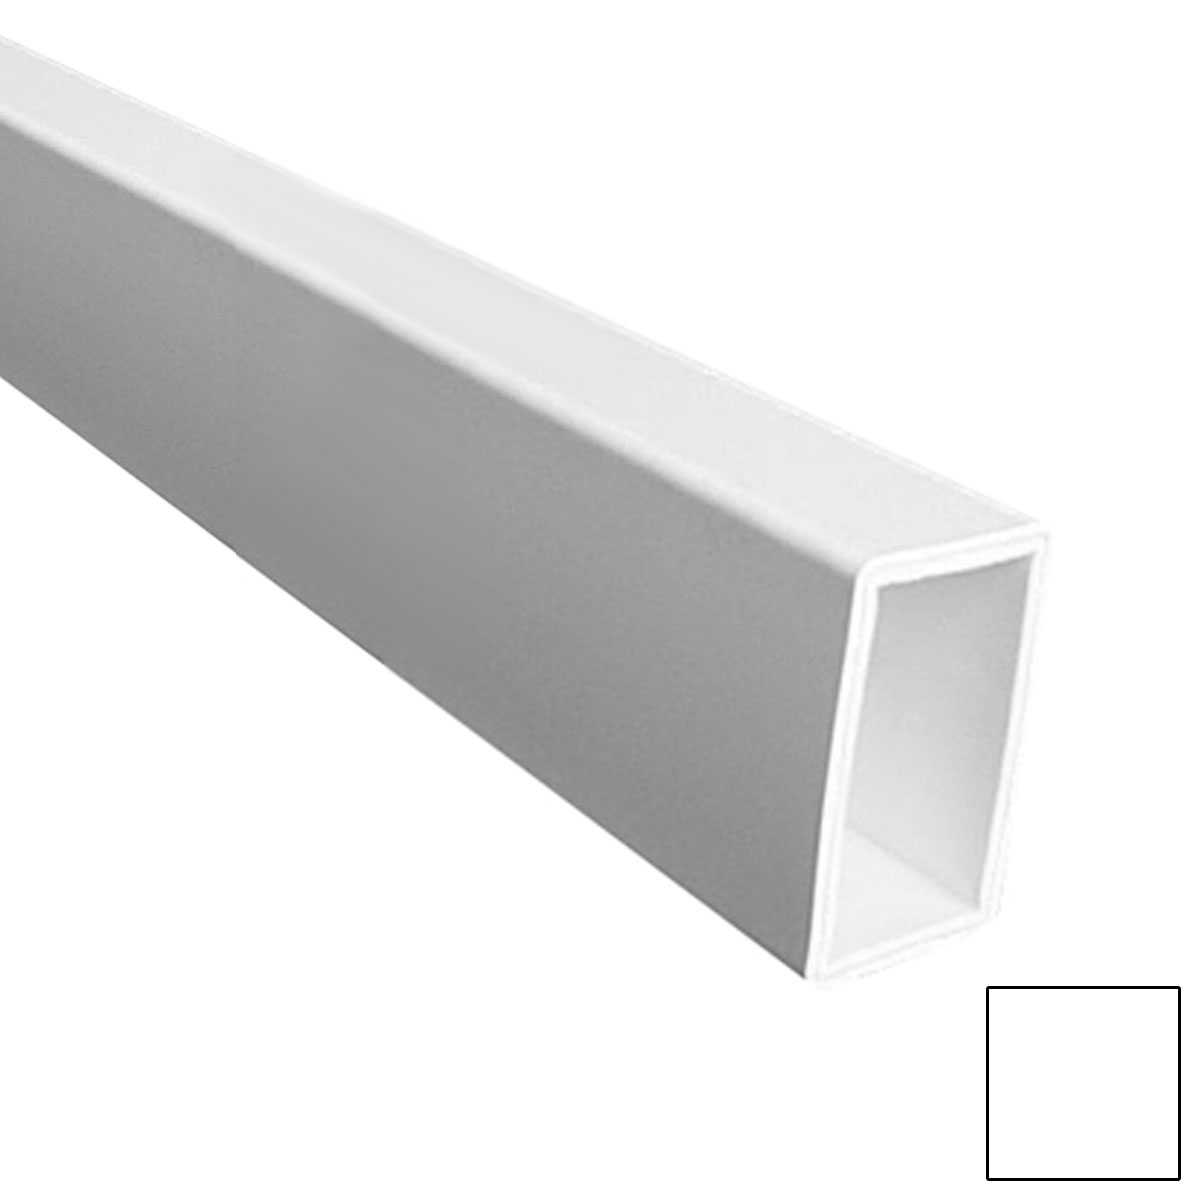 10'L Flat Straight Bottom Rail (For Square spindles), White